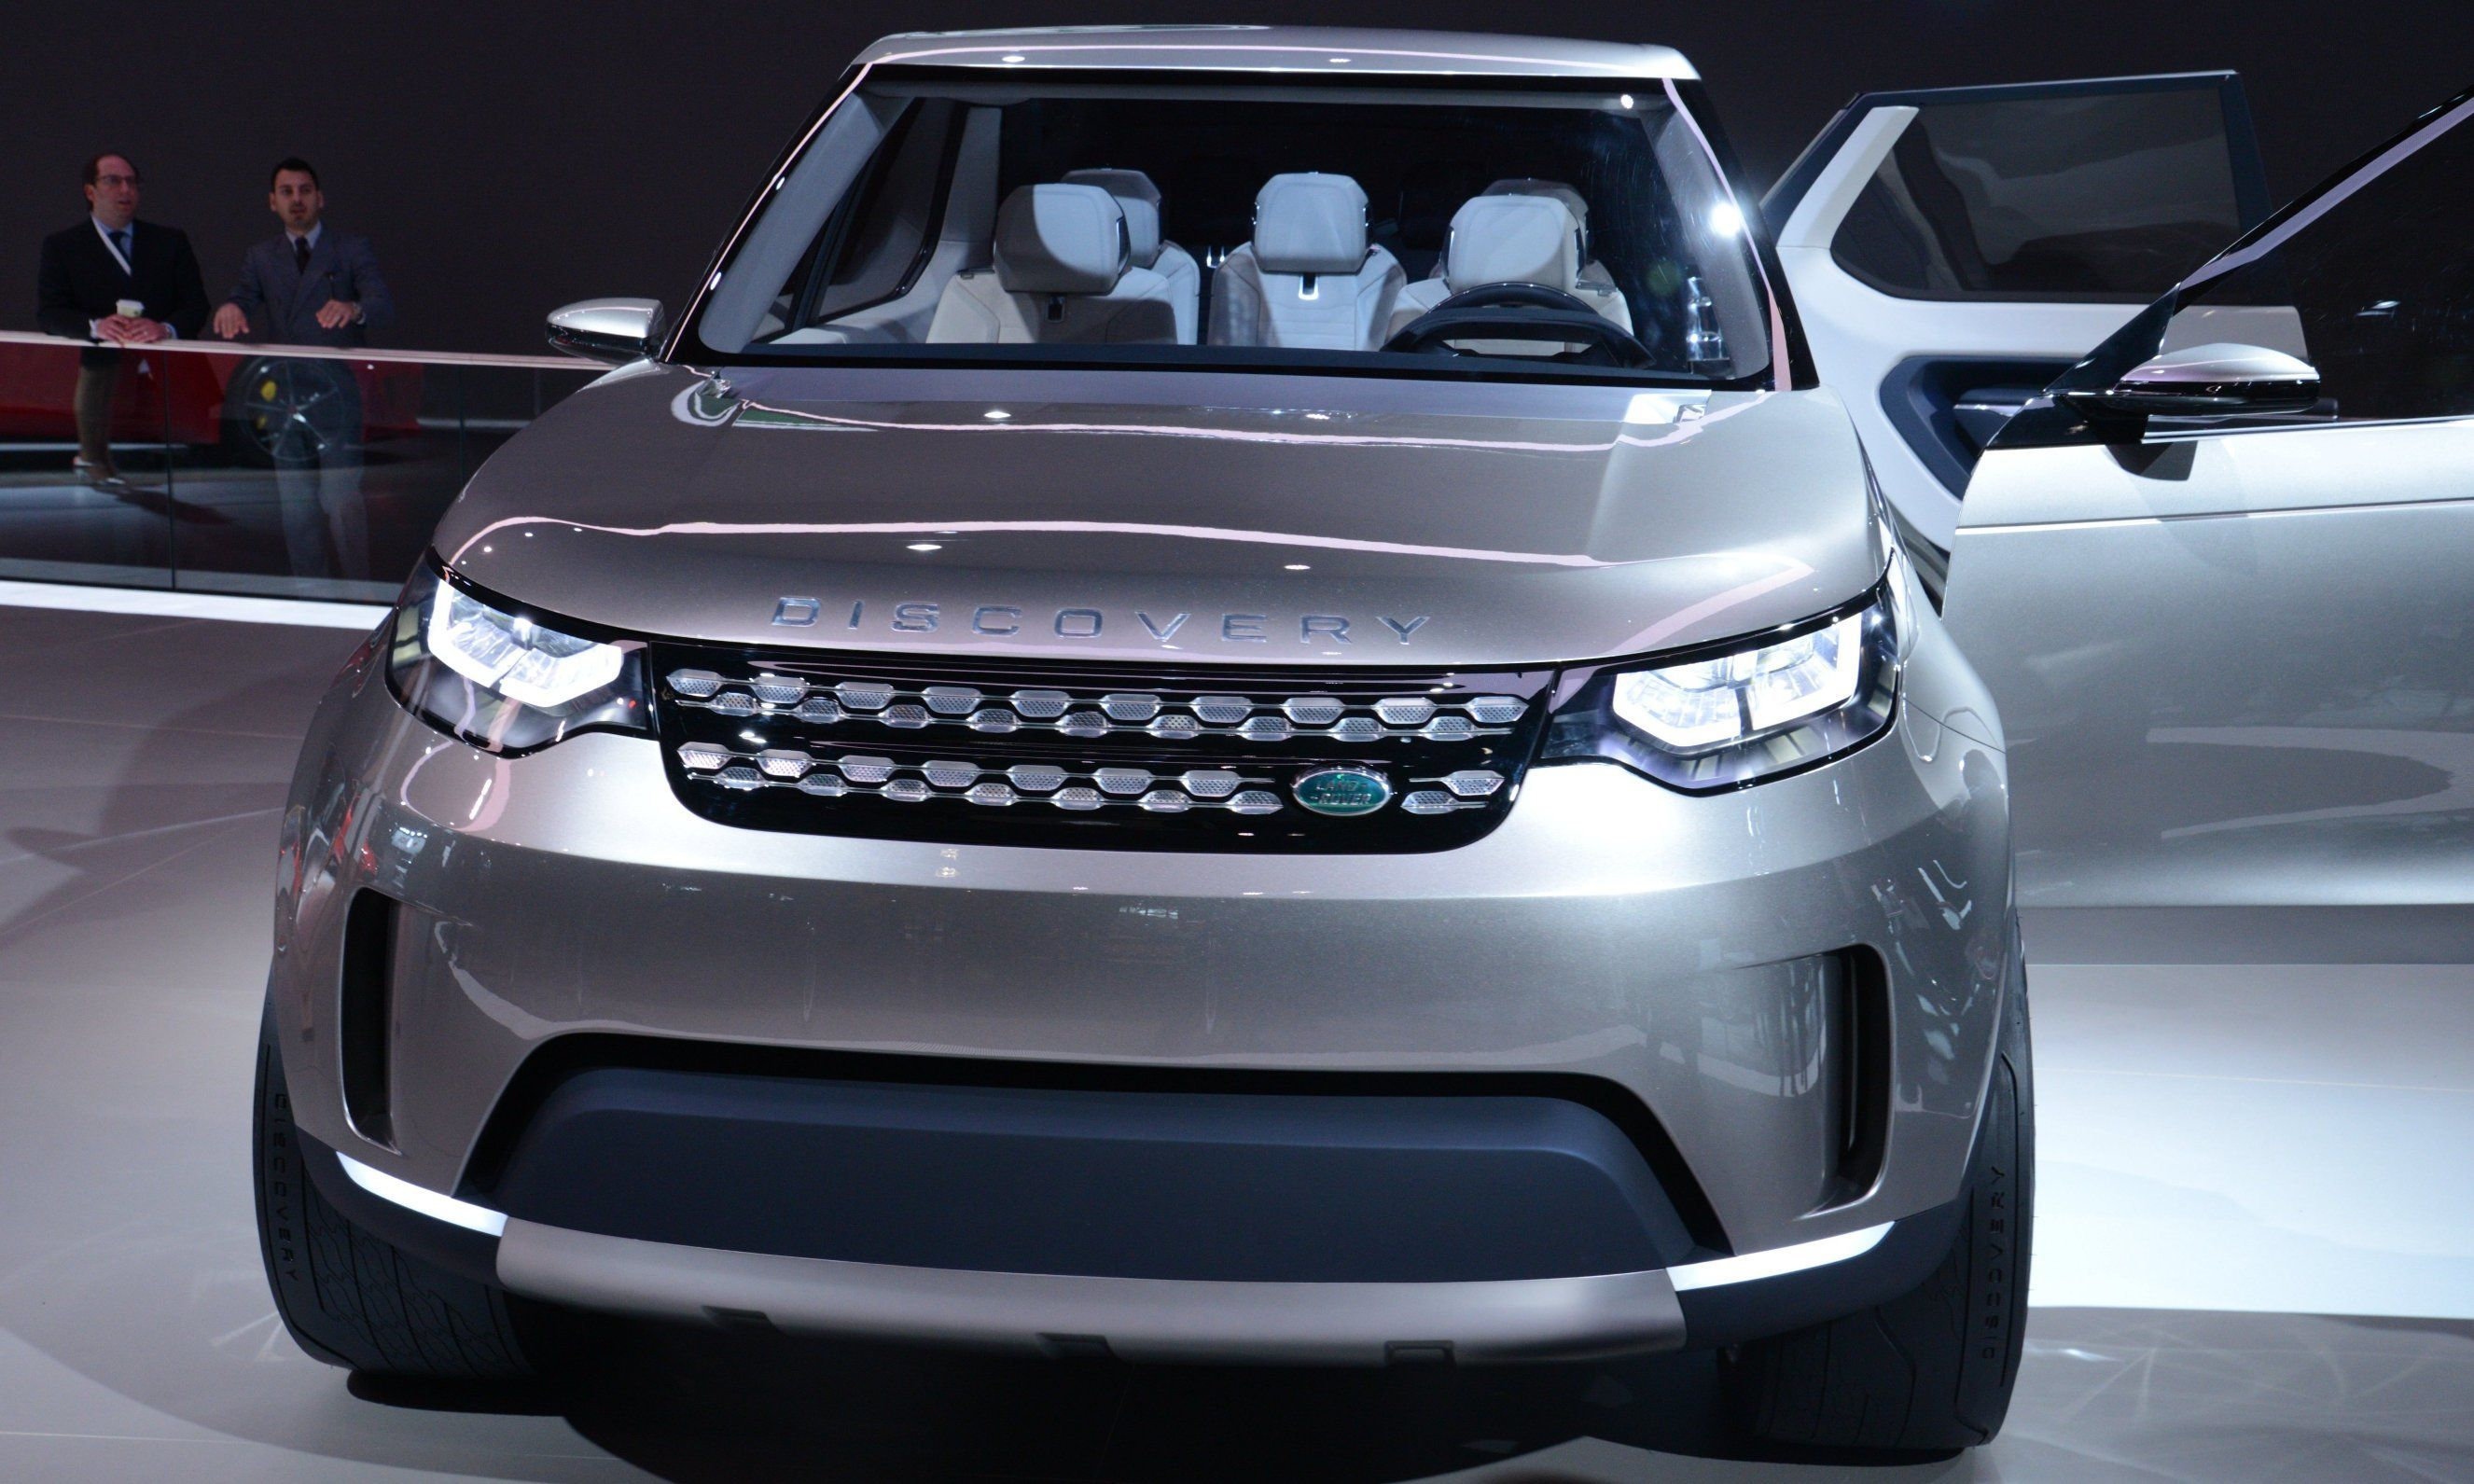 Update1 Land Rover Discovery Concept Previews 2016 LR4